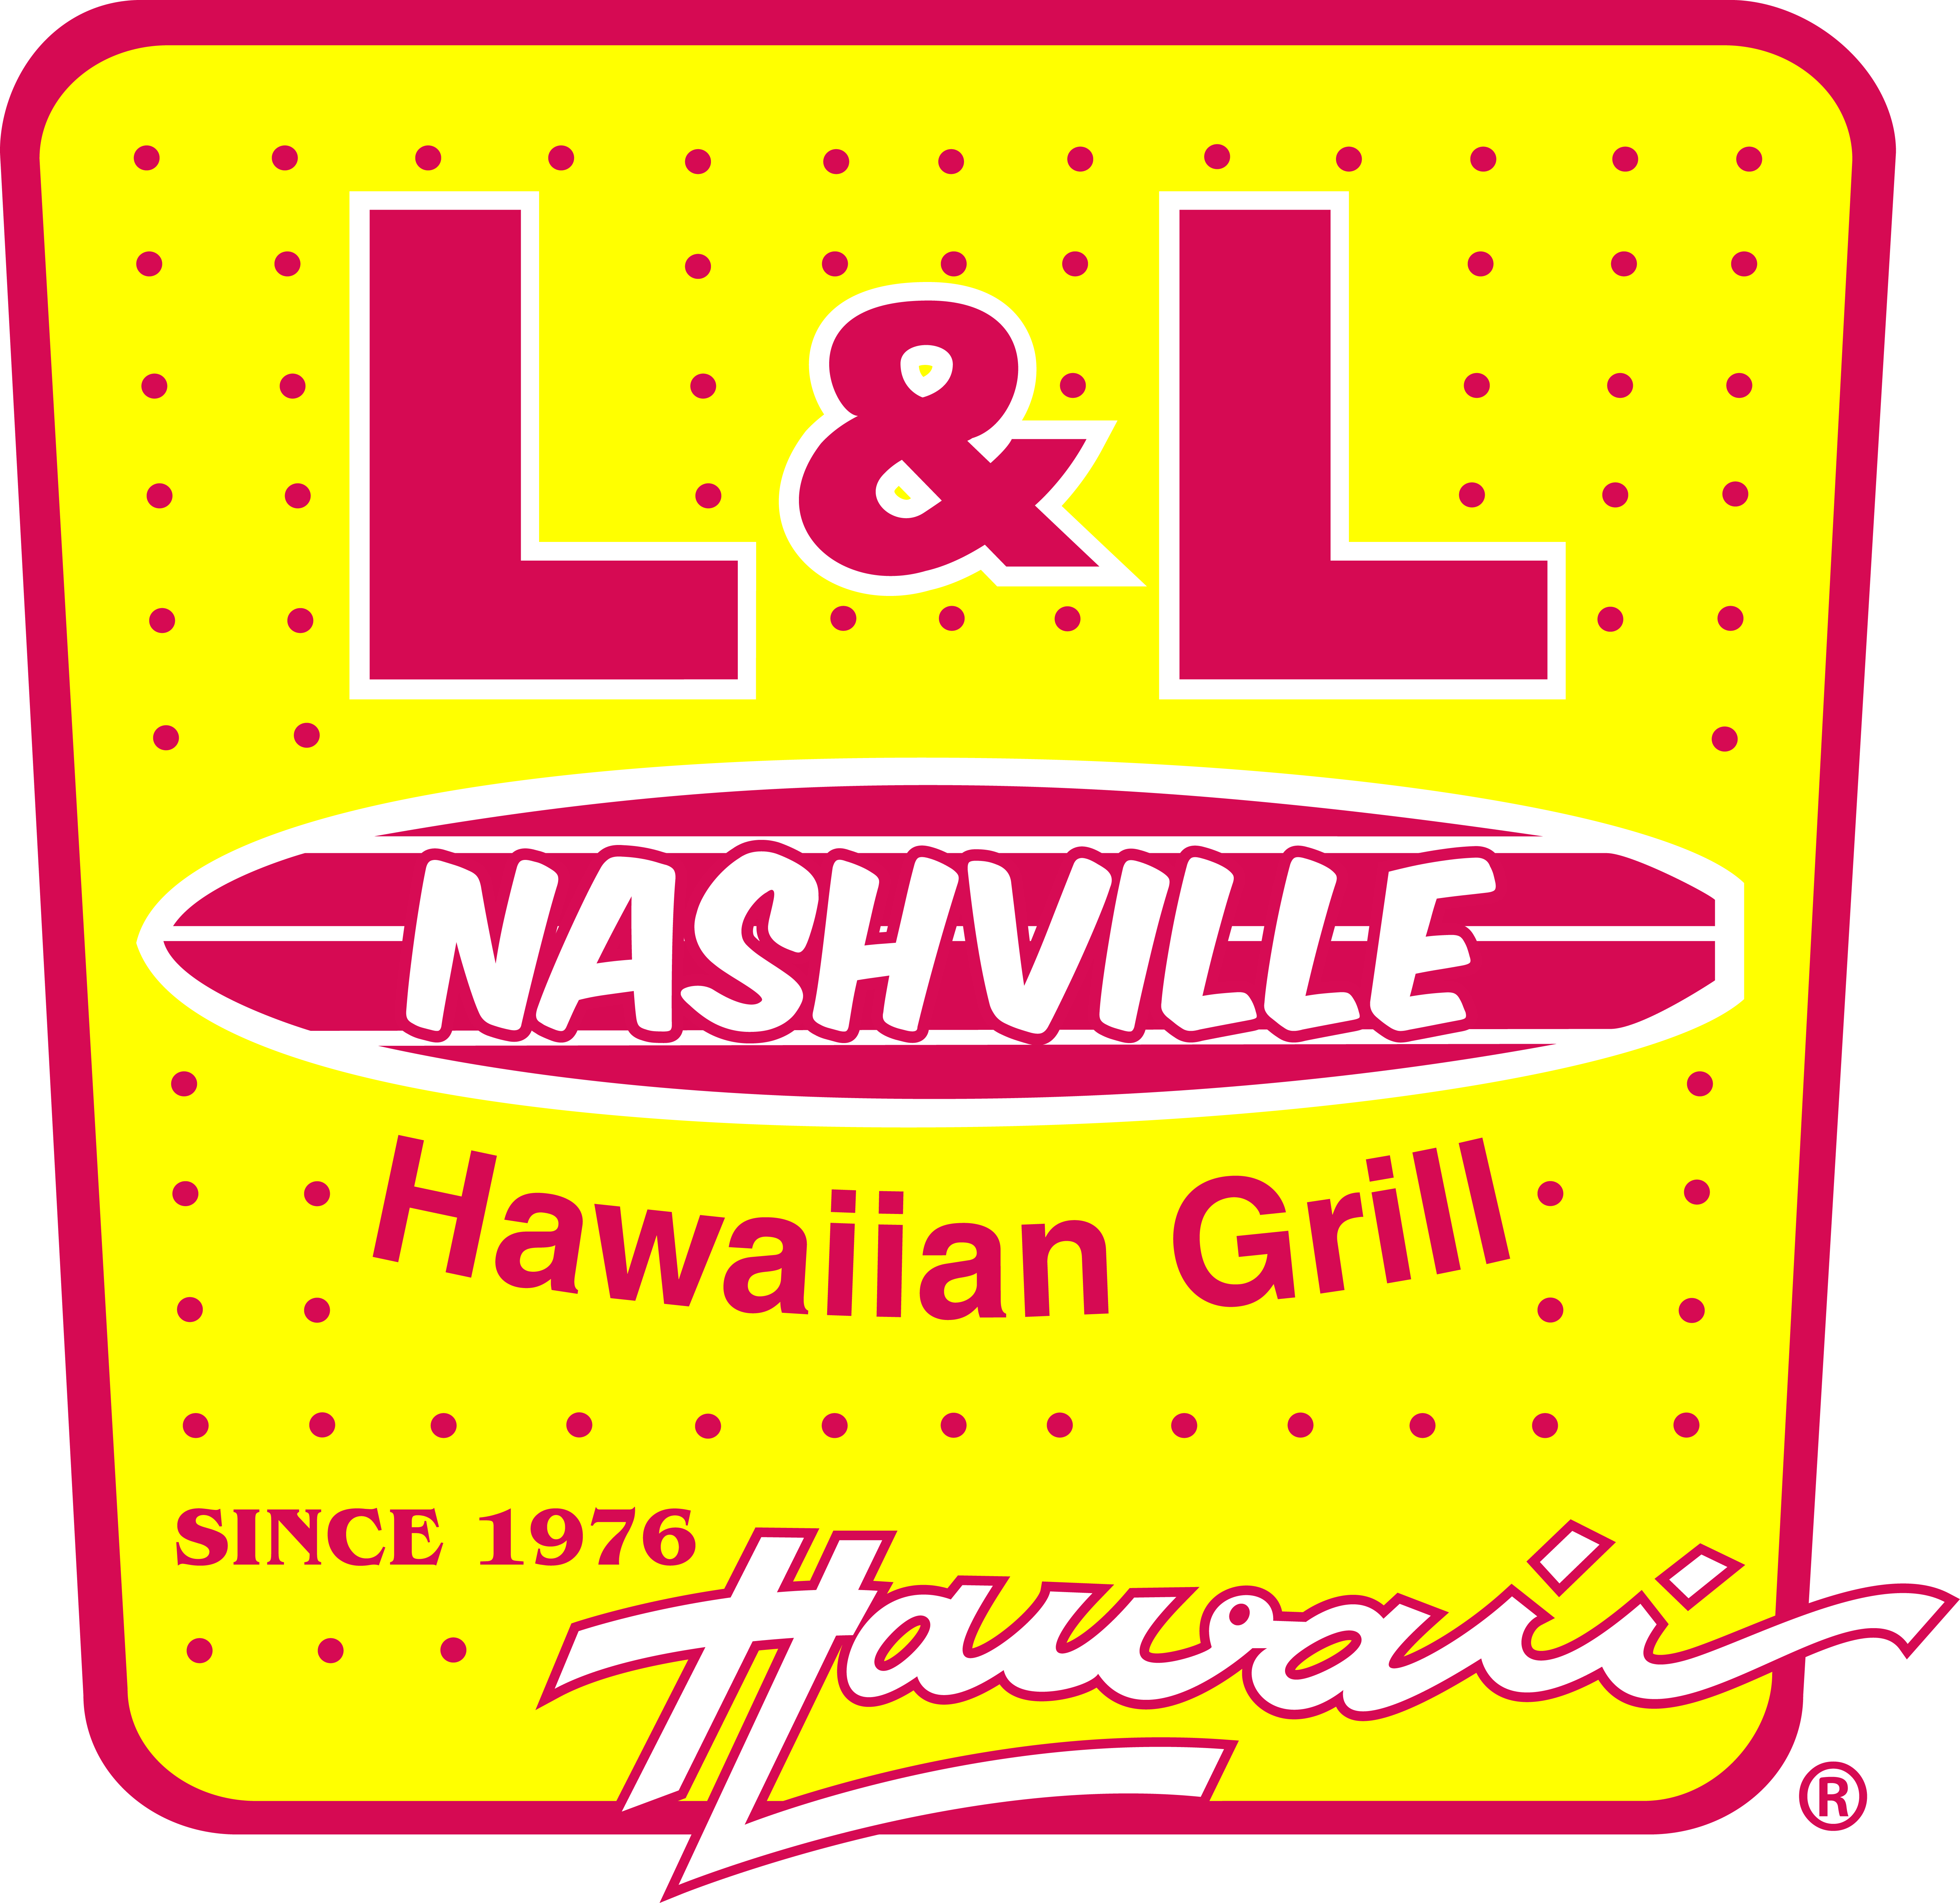 L l hawaiian grill franklin tn delivery dudes - Delivery dudes palm beach gardens ...